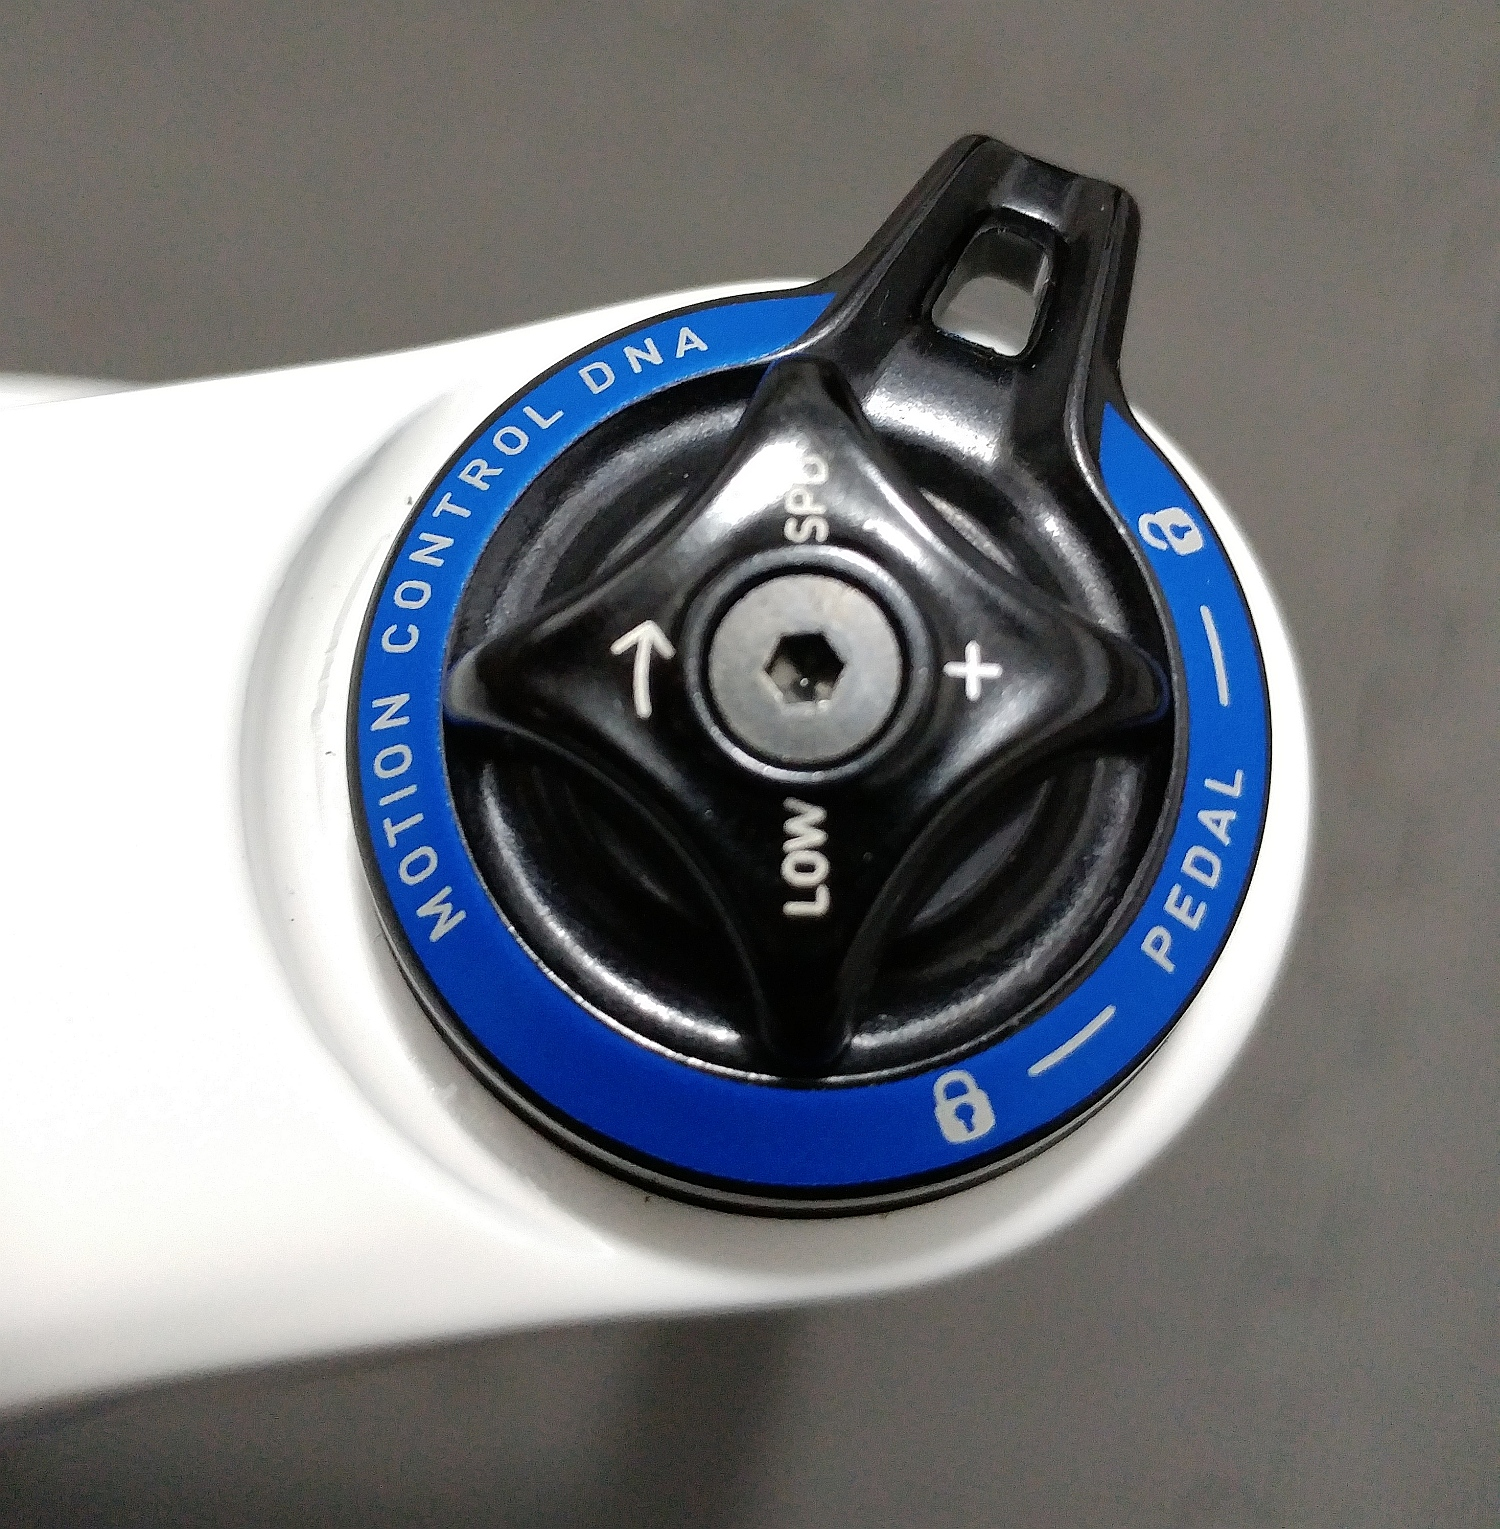 BLUTO RCT3 - Low Speed compression dial with Lockout switch